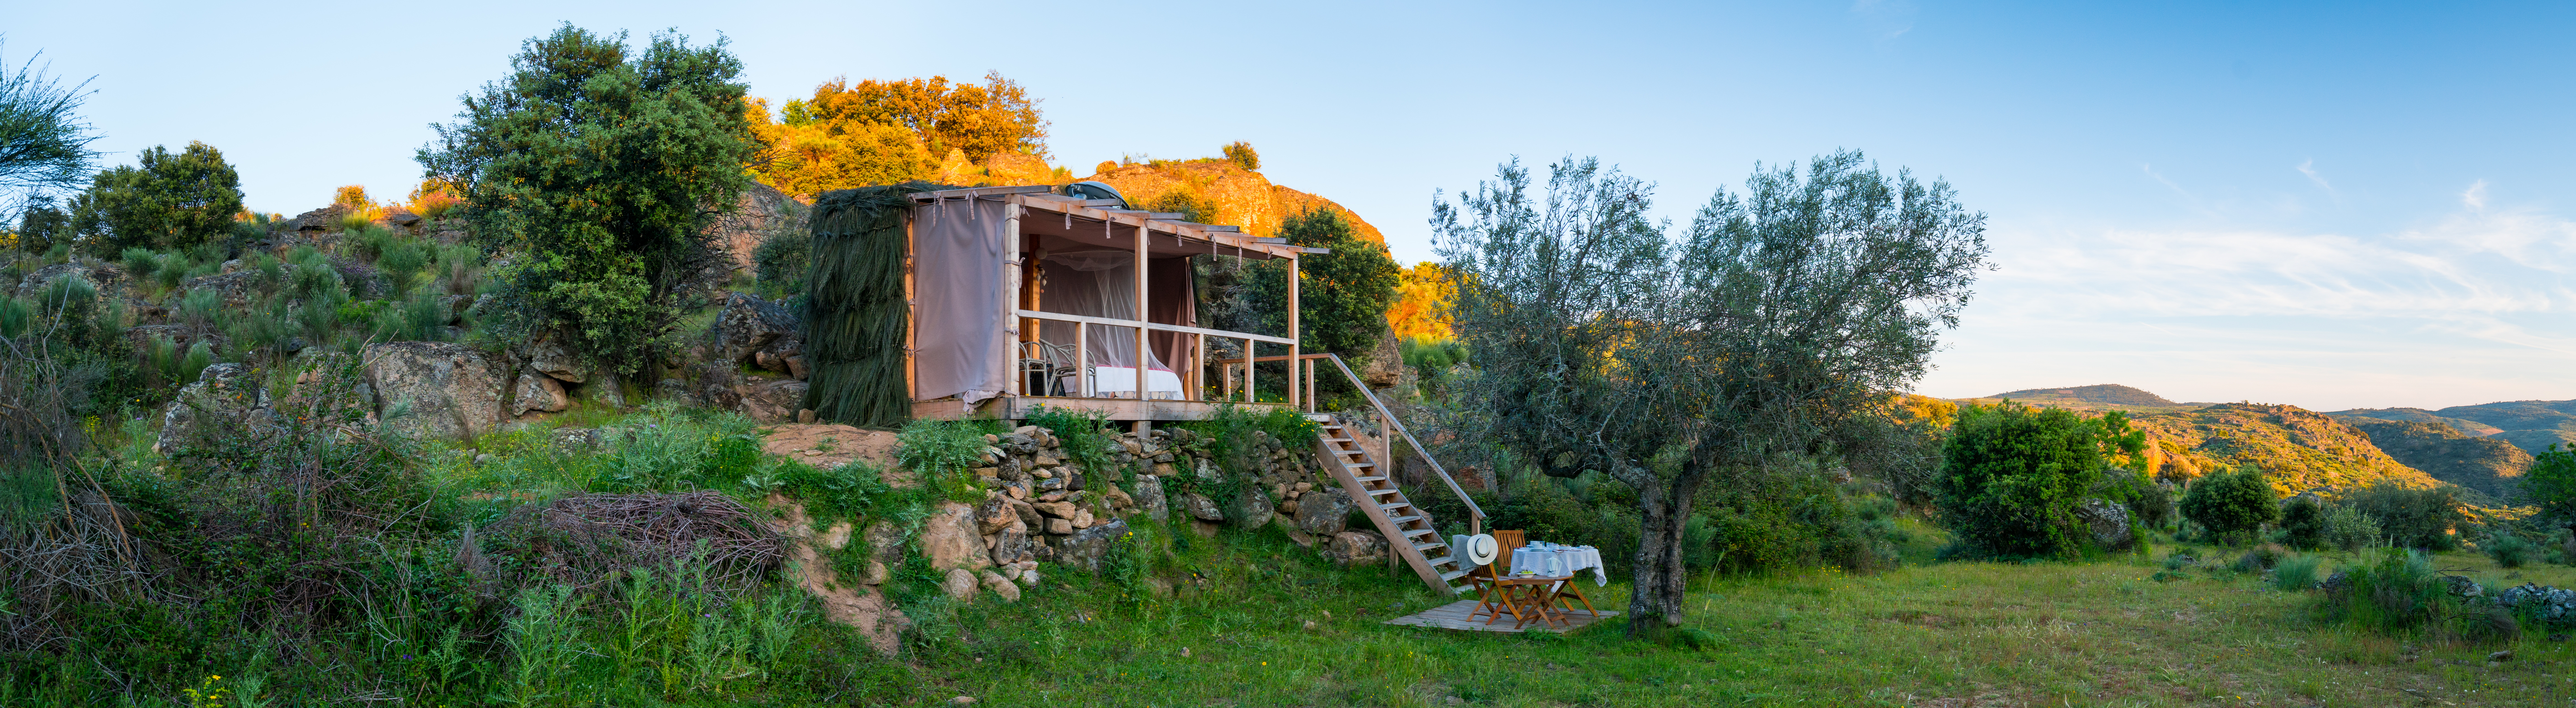 Located in the Faia Brava Nature Reserve in northern Portugal, Star Camp is an example of a successful nature-based business.